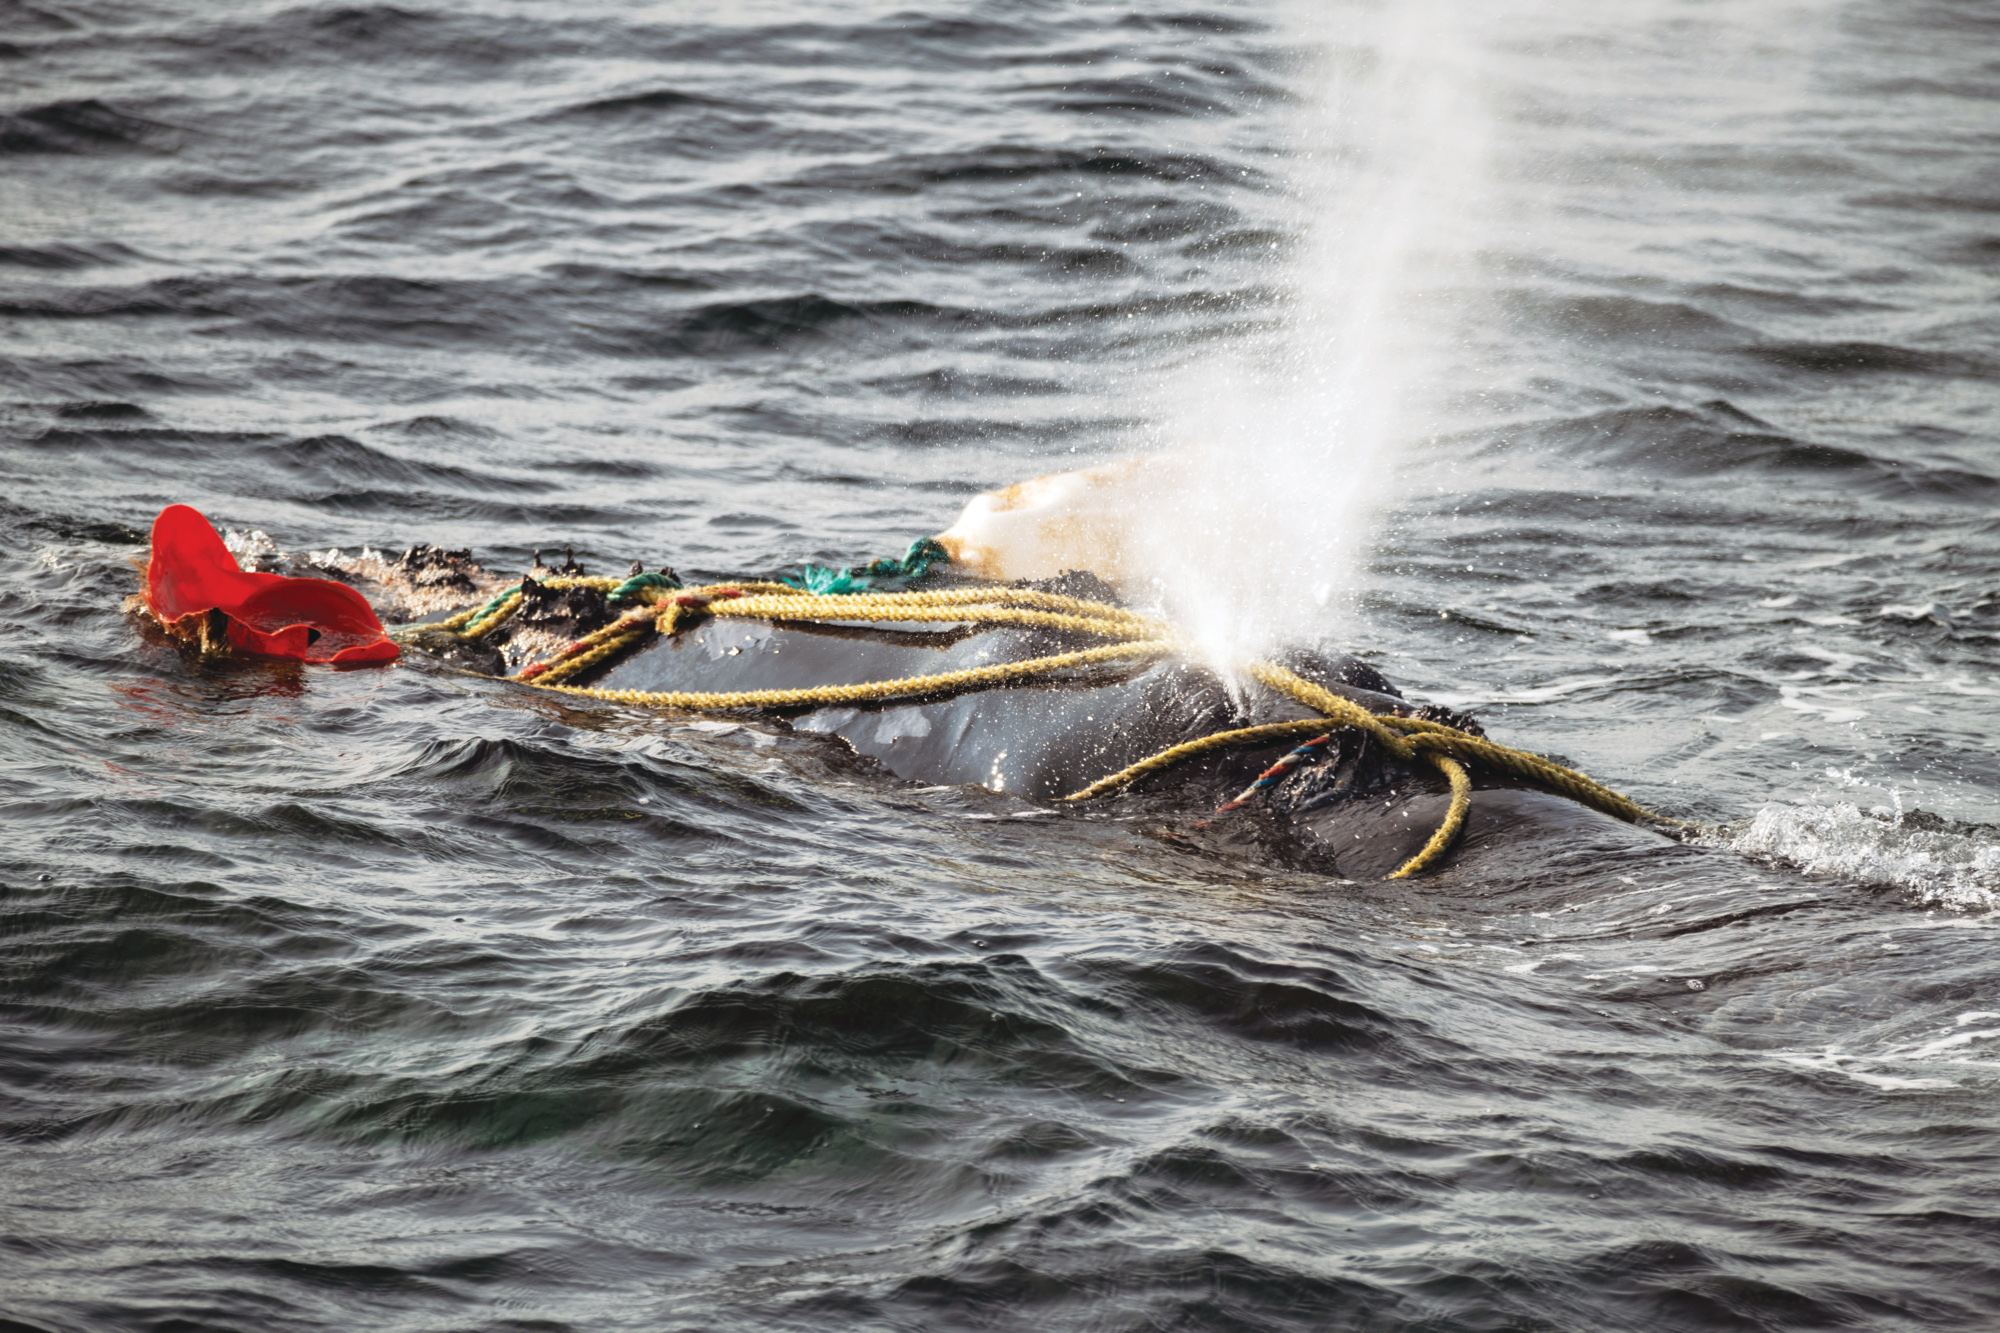 Fishing ropes wrap over the blowhole of a severely entangled North Atlantic right whale in the Gulf of Saint Lawrence, Canada. (Nick Hawkins)